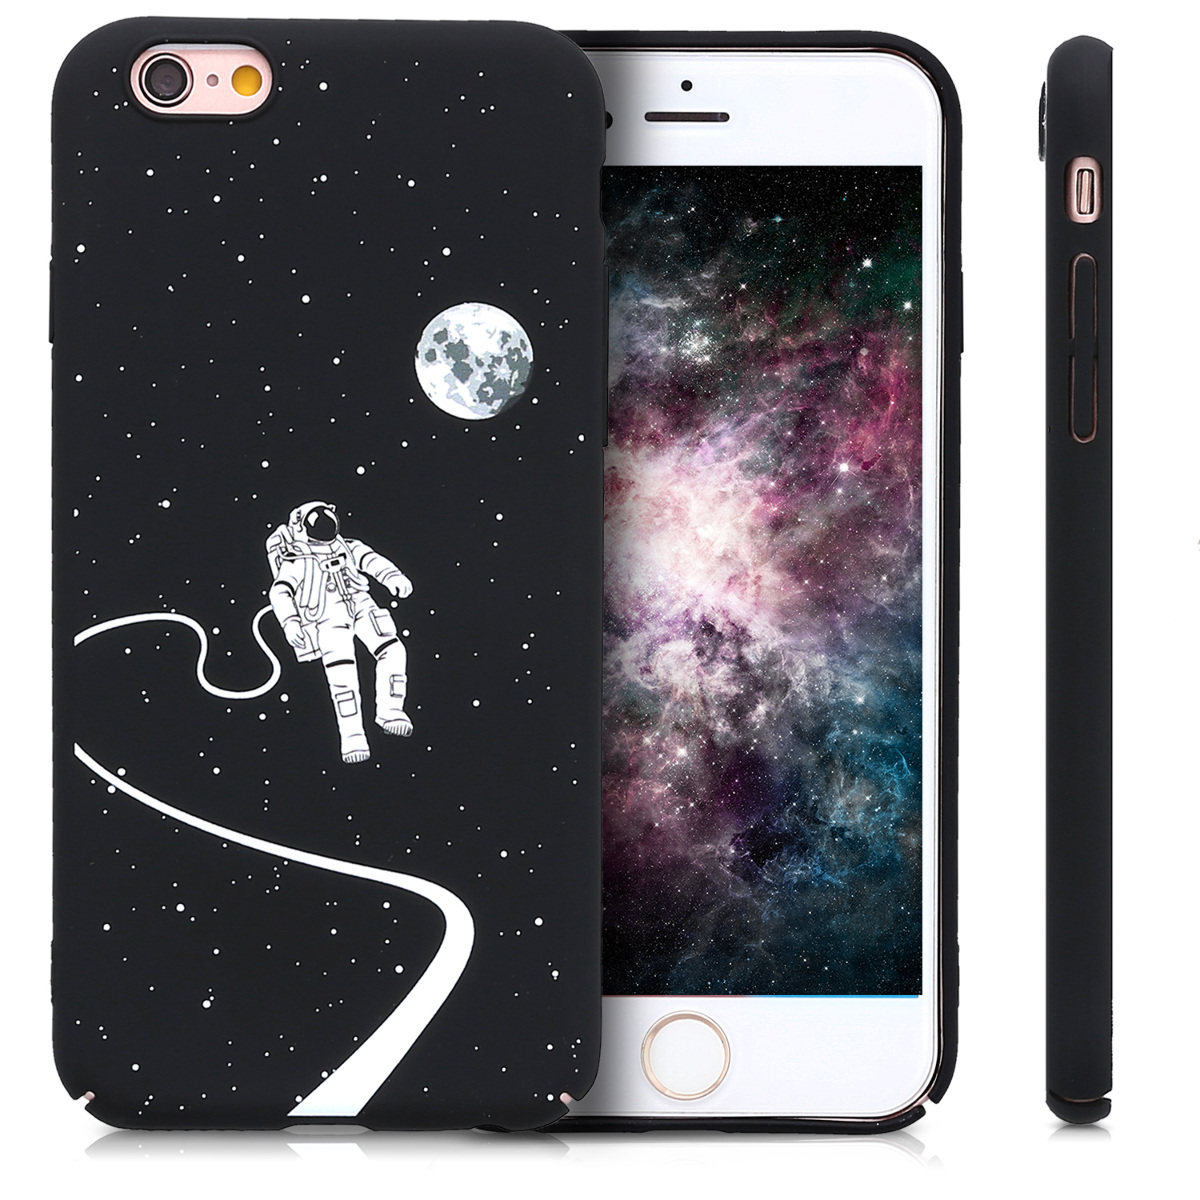 Hard-Case-Sturdy-Protective-Back-Cover-for-Apple-iPhone-6-6S